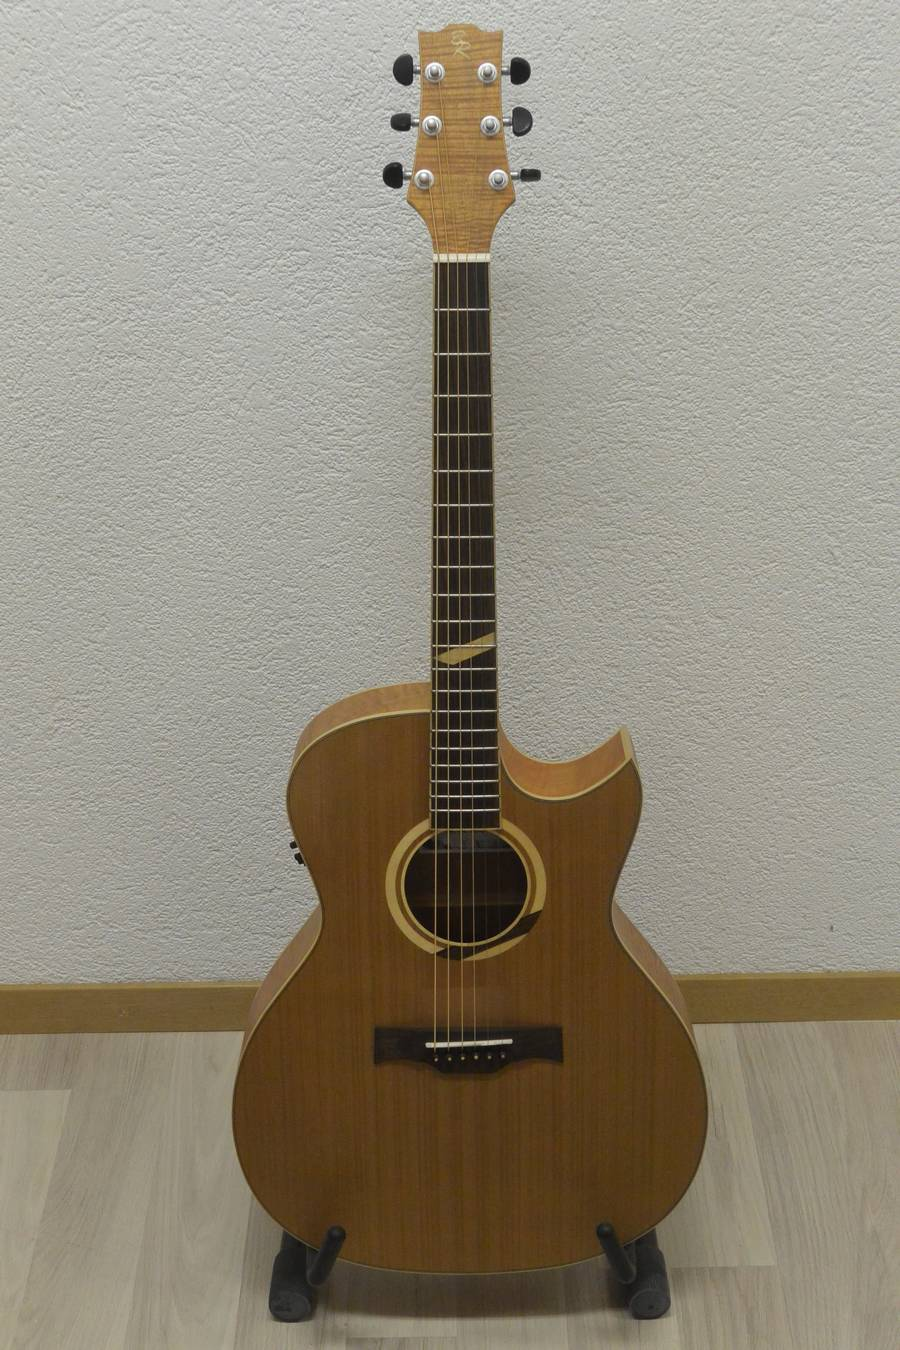 guitare acoustique baton rouge X6C frs 580.00